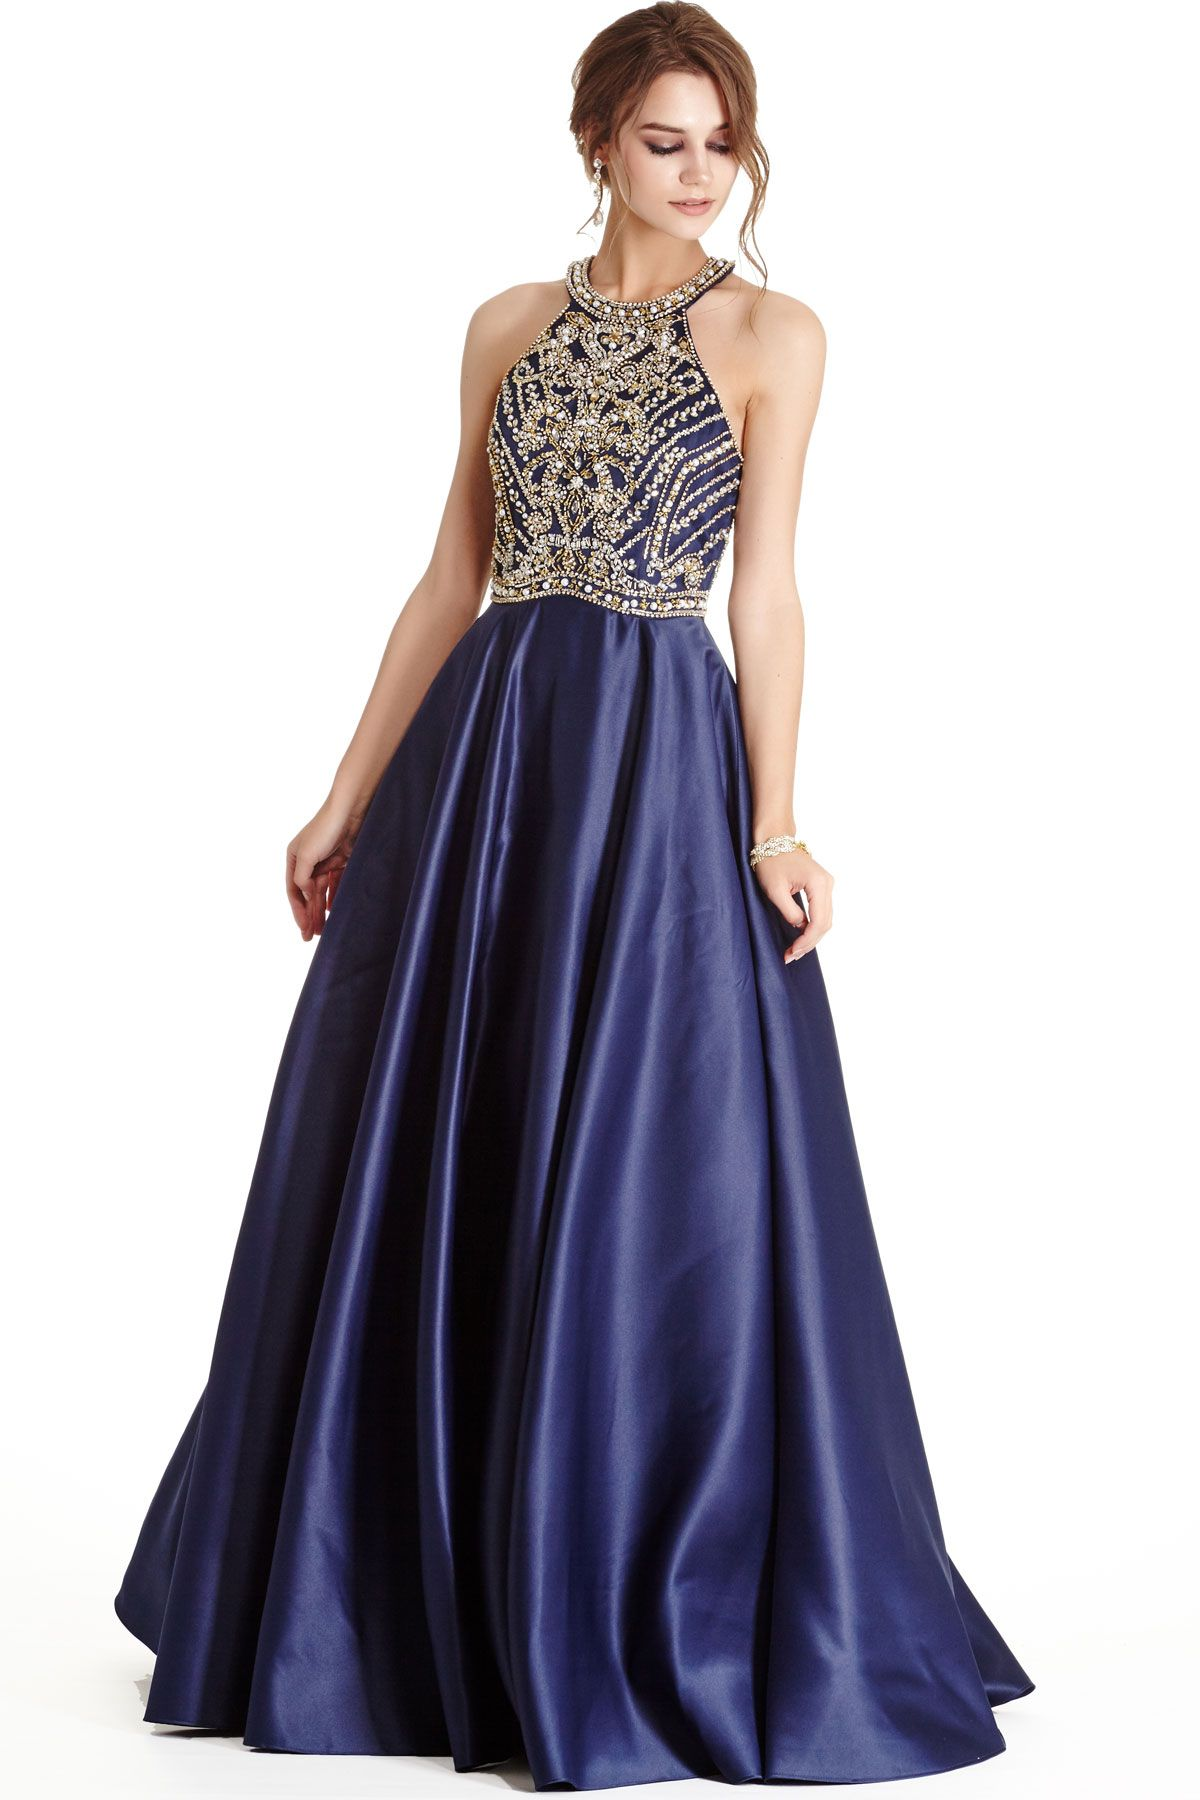 Prom gown apl cfashionwholesalepromdresses